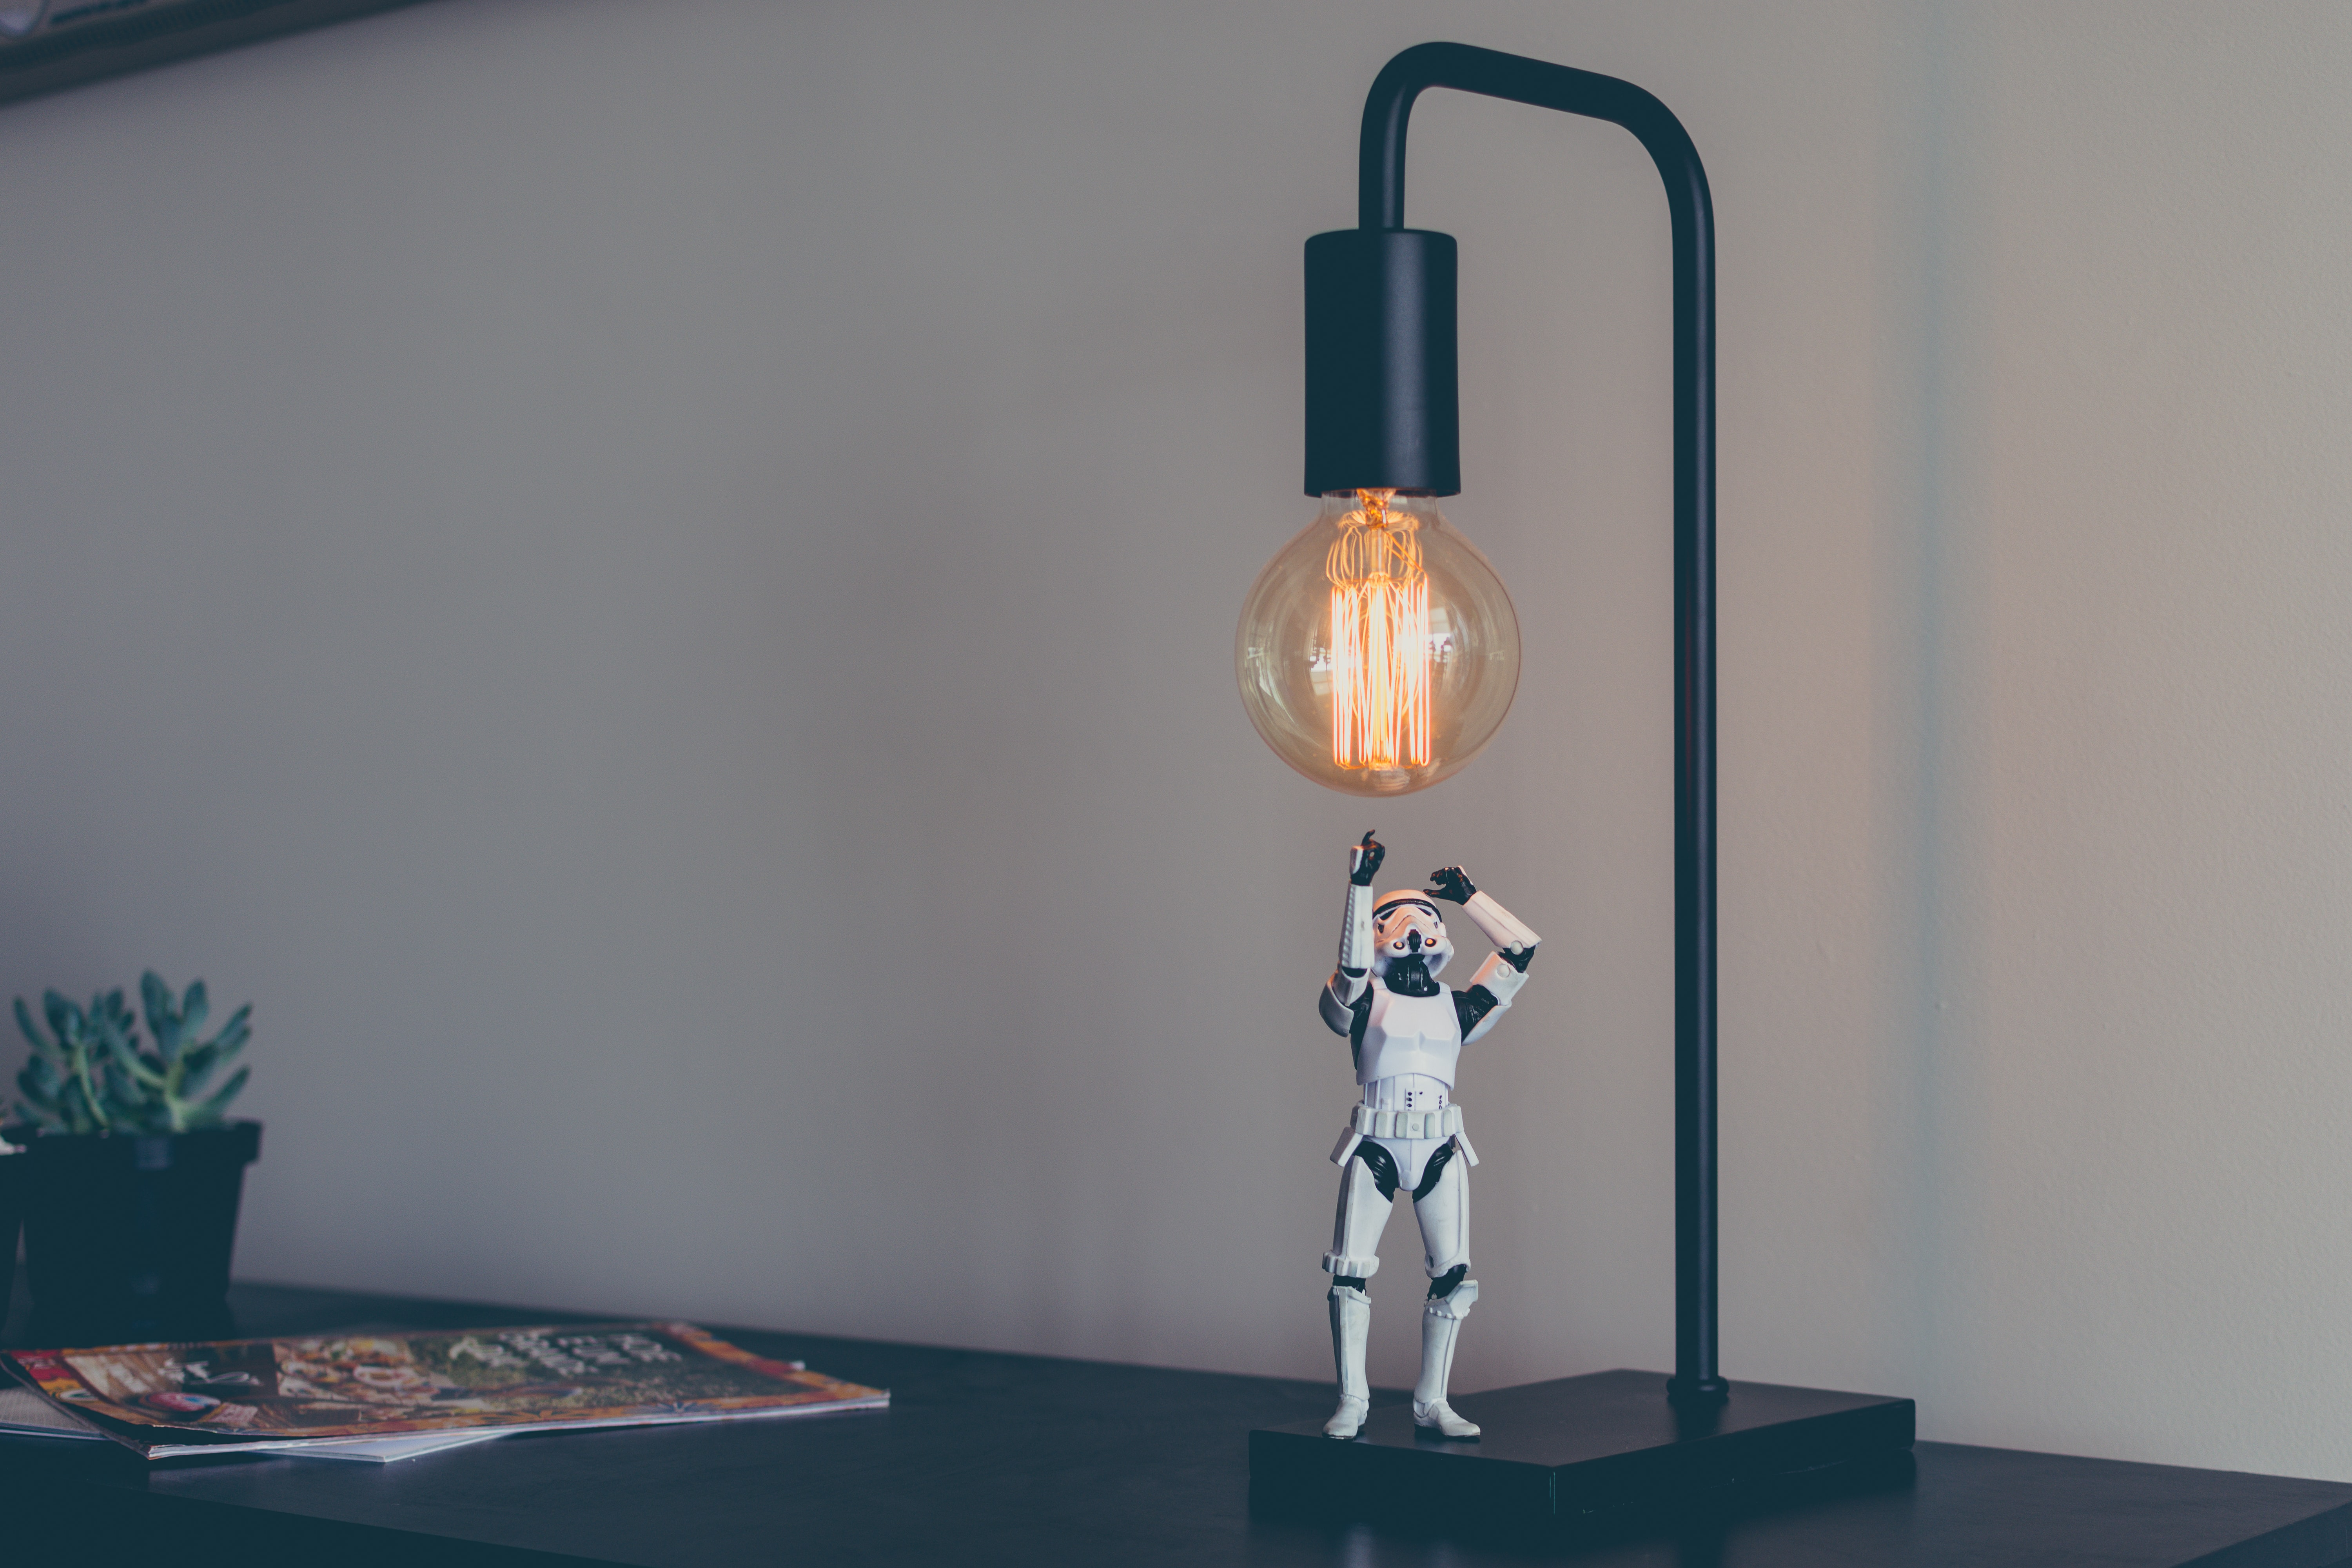 A figurine of a stormtrooper under a desk lamp with an incandescent light bulb